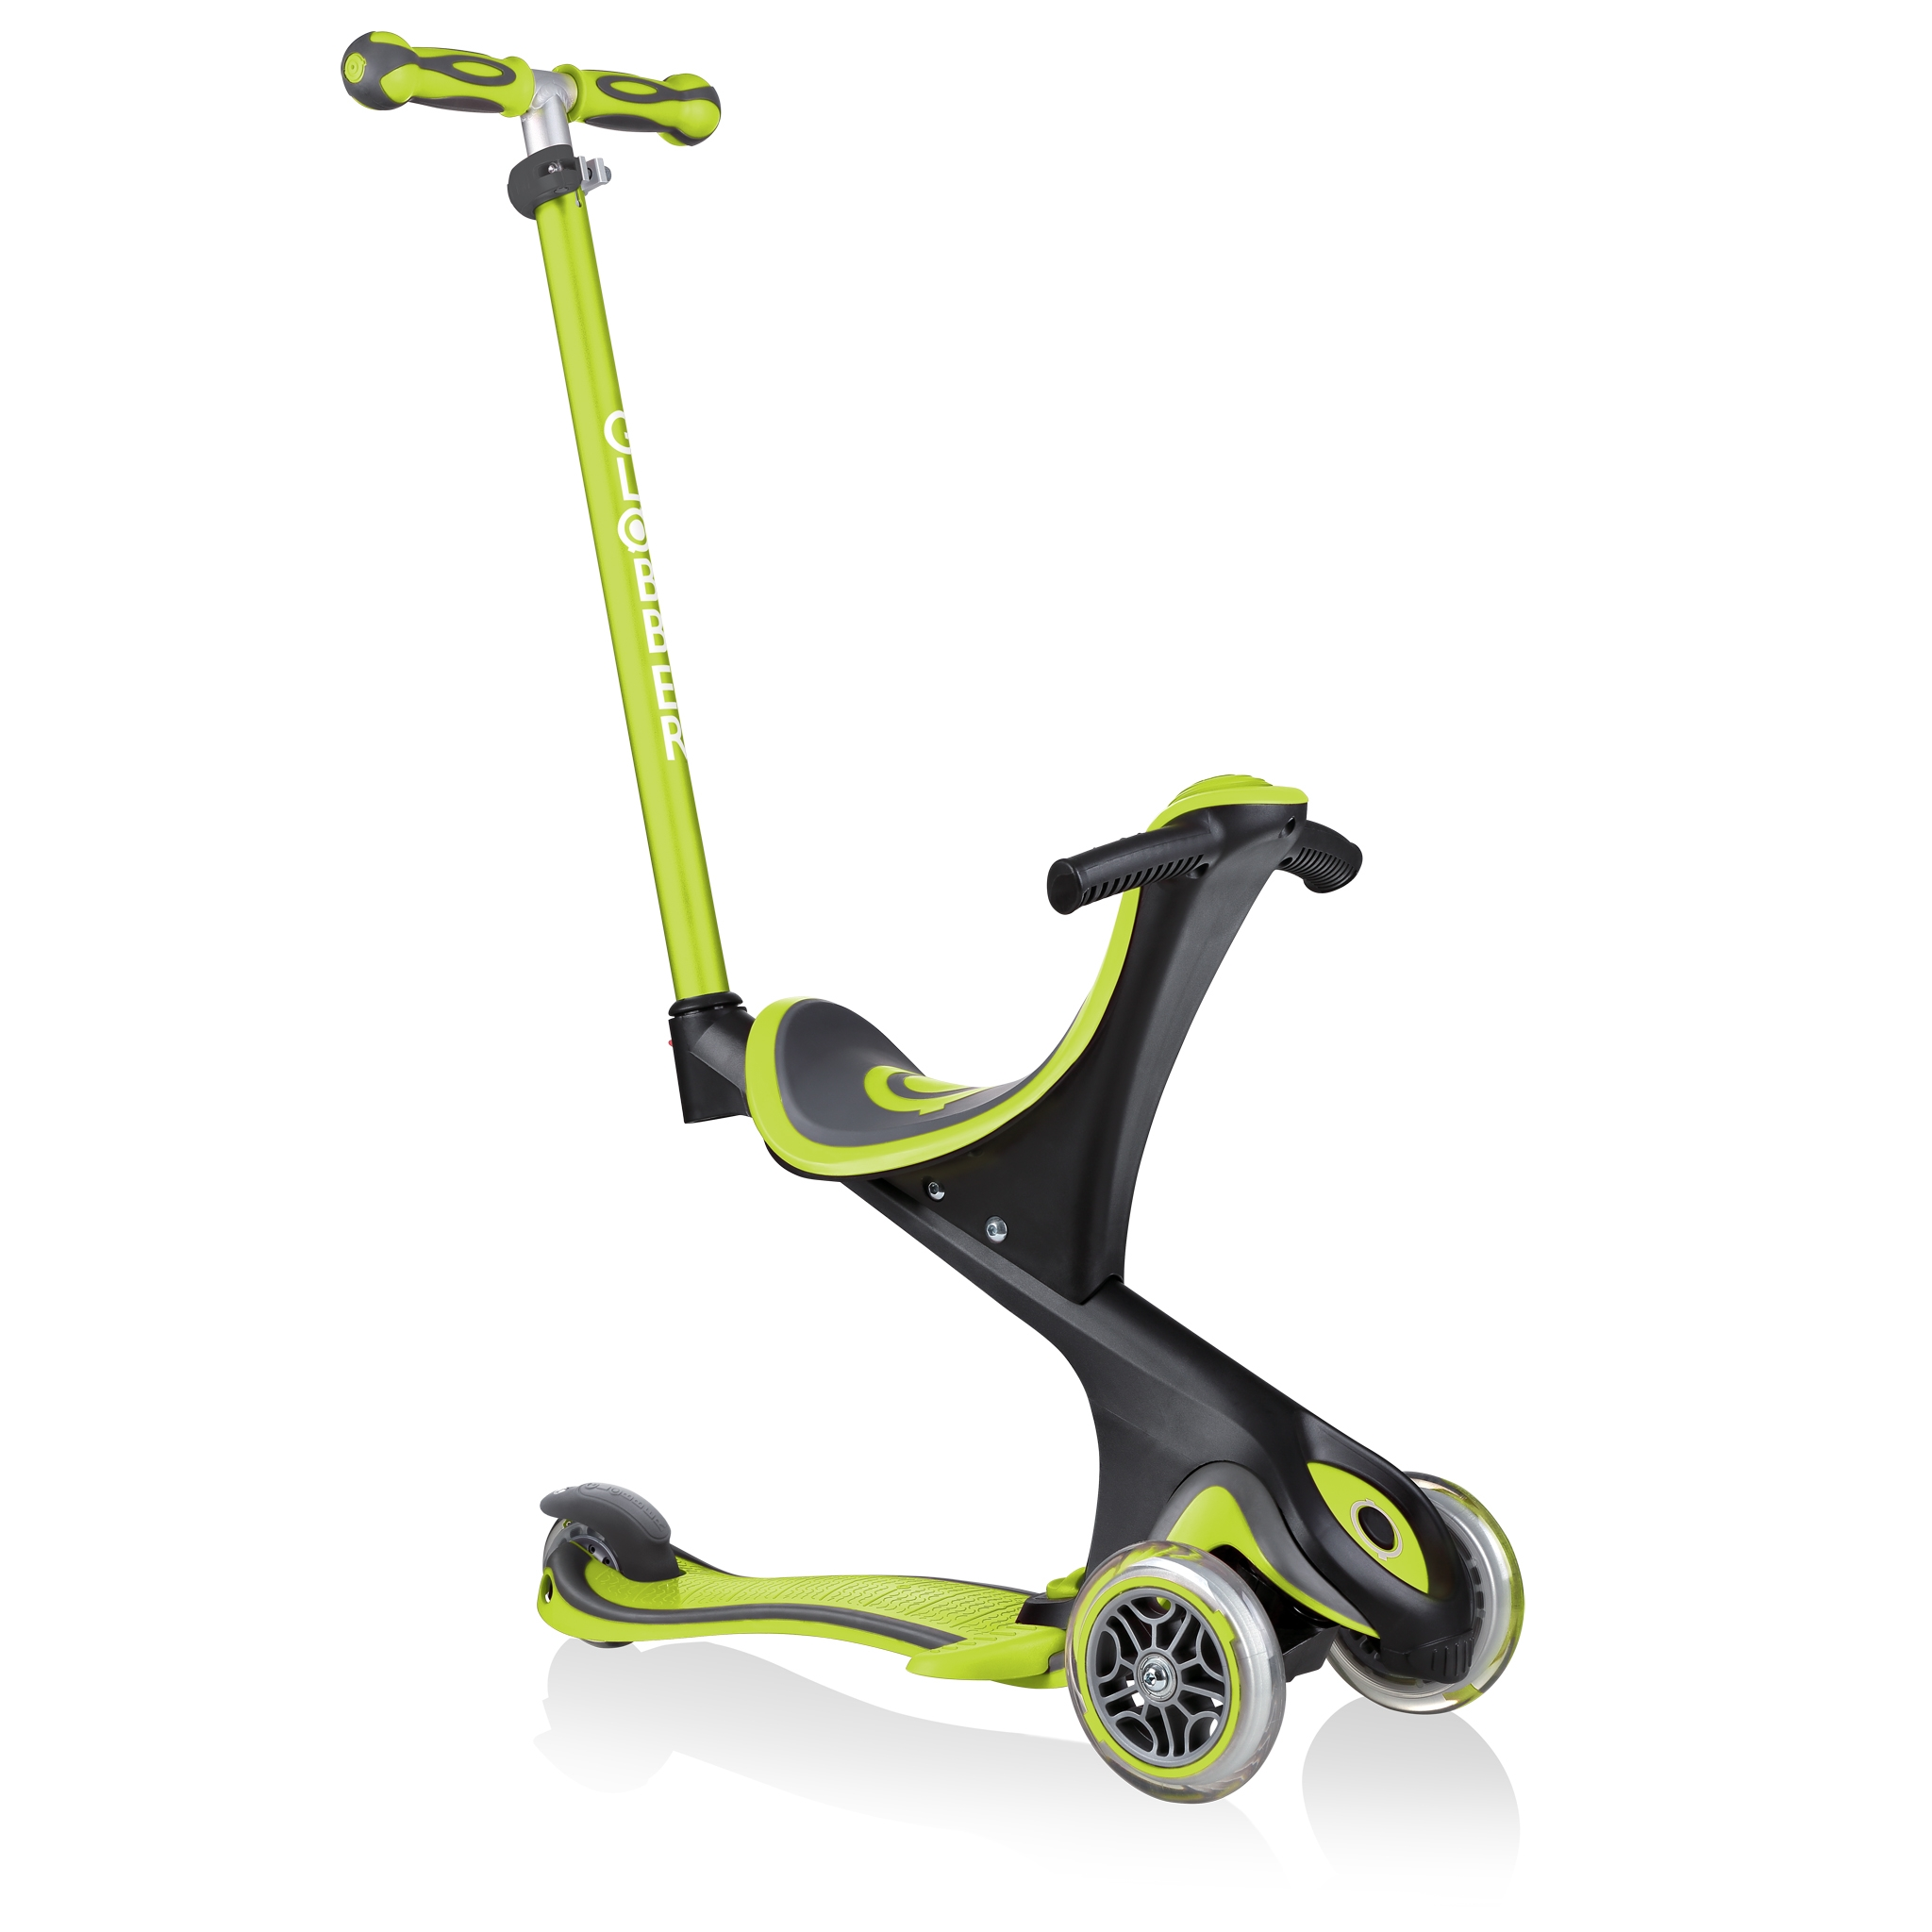 GO-UP-COMFORT-scooter-with-seat-with-extra-wide-seat-lime-green